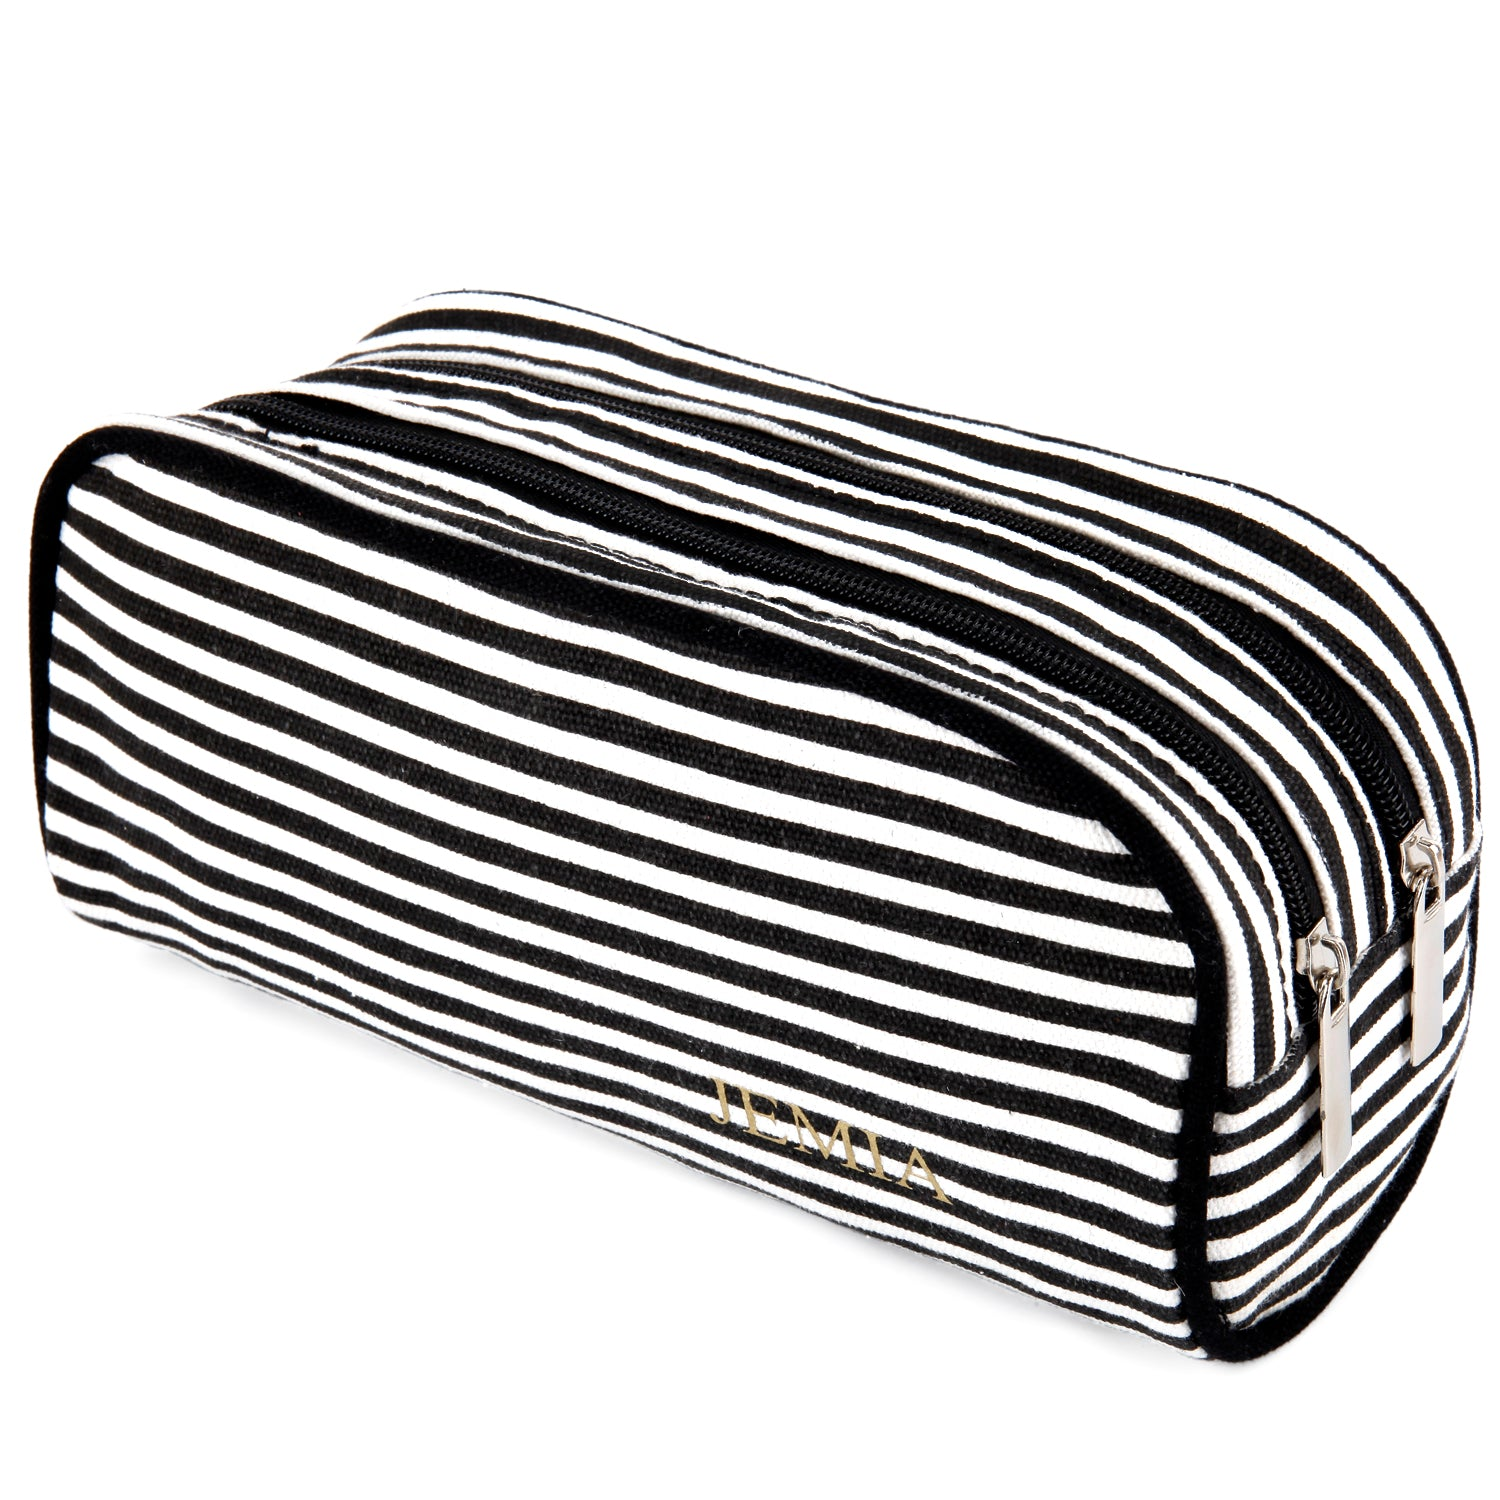 Dual Compartments Pencil Case with Mesh Pockets (Black White Stripes, Canvas)